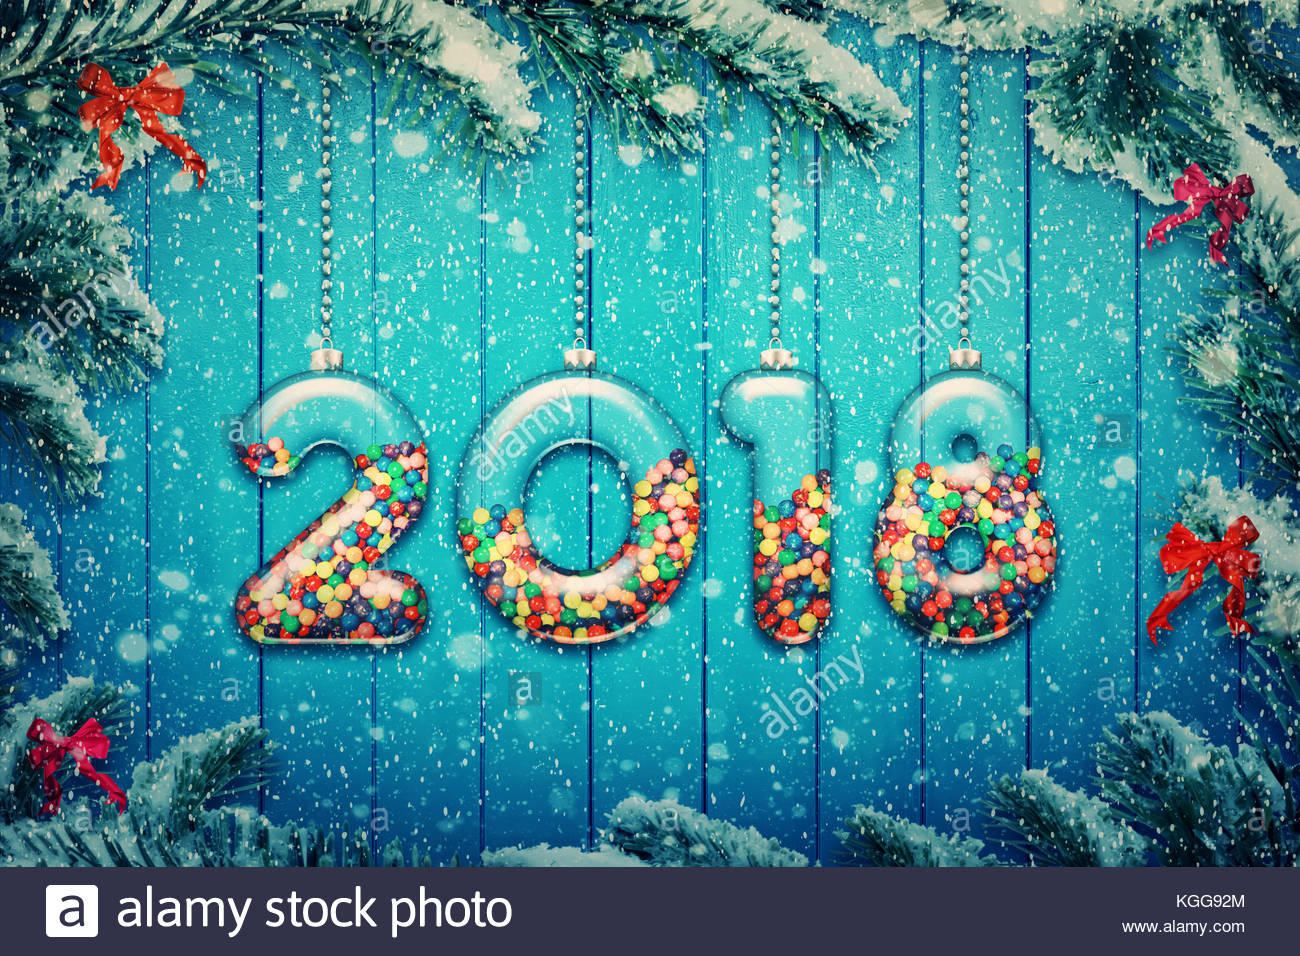 happy new year 2018 background set of transparent glass with multicolored candy and sweets hang on a snowy christmas tree branch